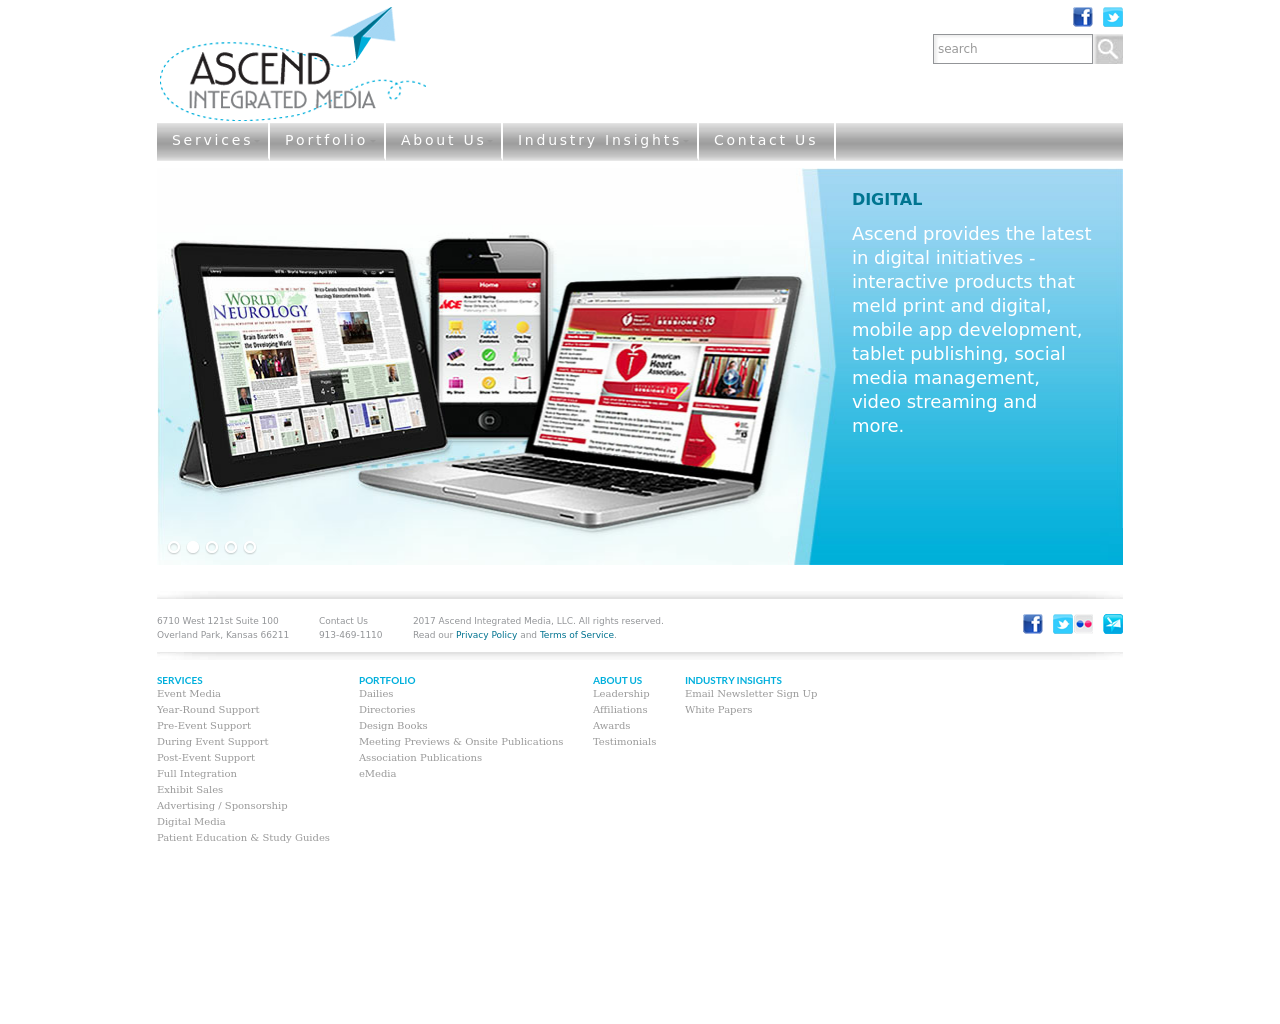 ASCEND-INTEGRATED-MEDIA-Advertising-Reviews-Pricing